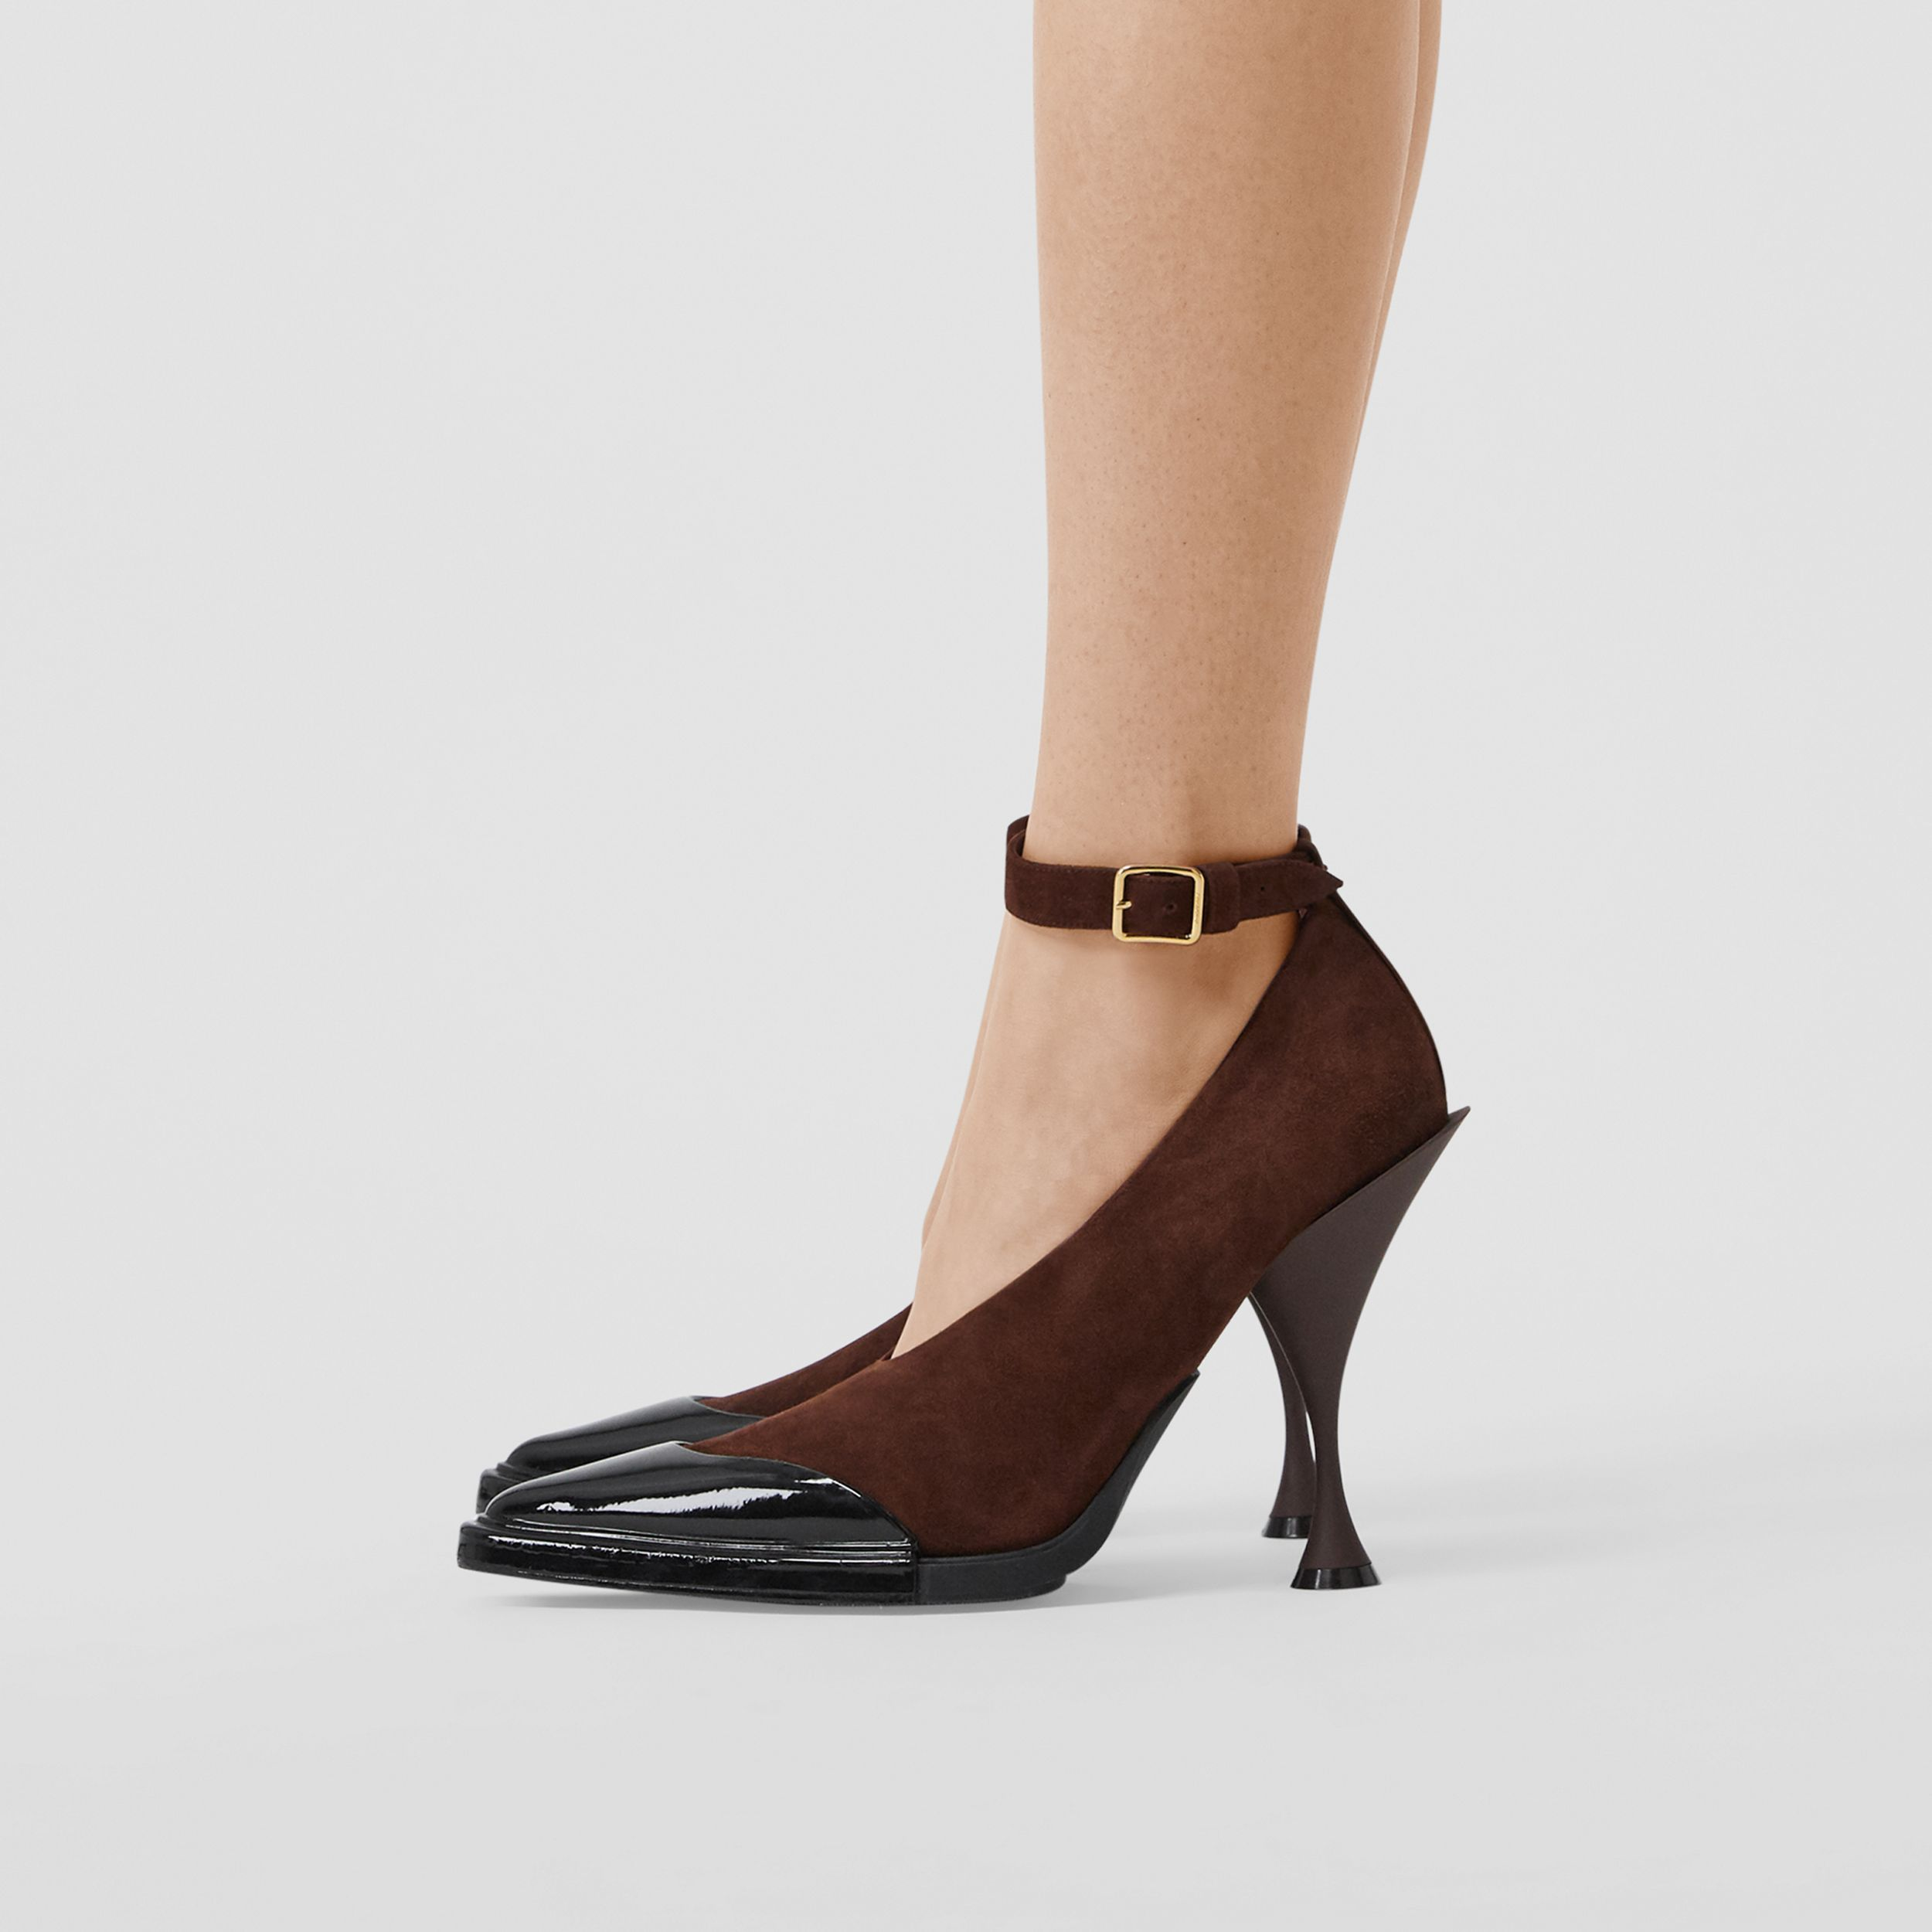 Toe Cap Detail Leather Point-toe Pumps in Dark Mocha - Women | Burberry Hong Kong S.A.R - 3